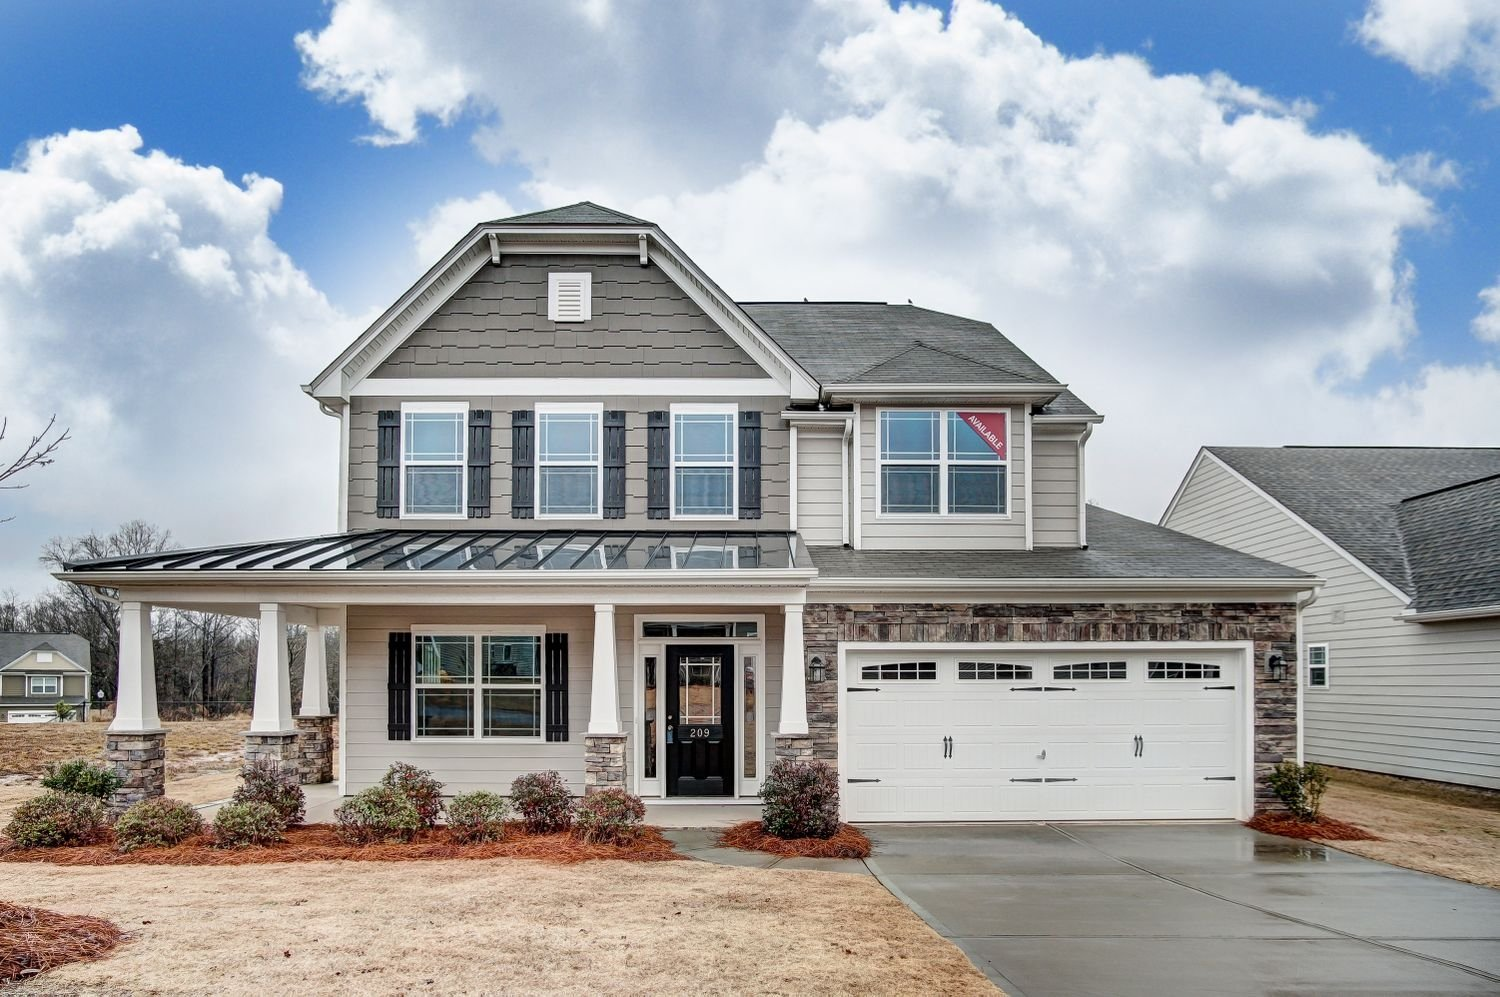 Eastwood Homes New Homes in Greenville, SC